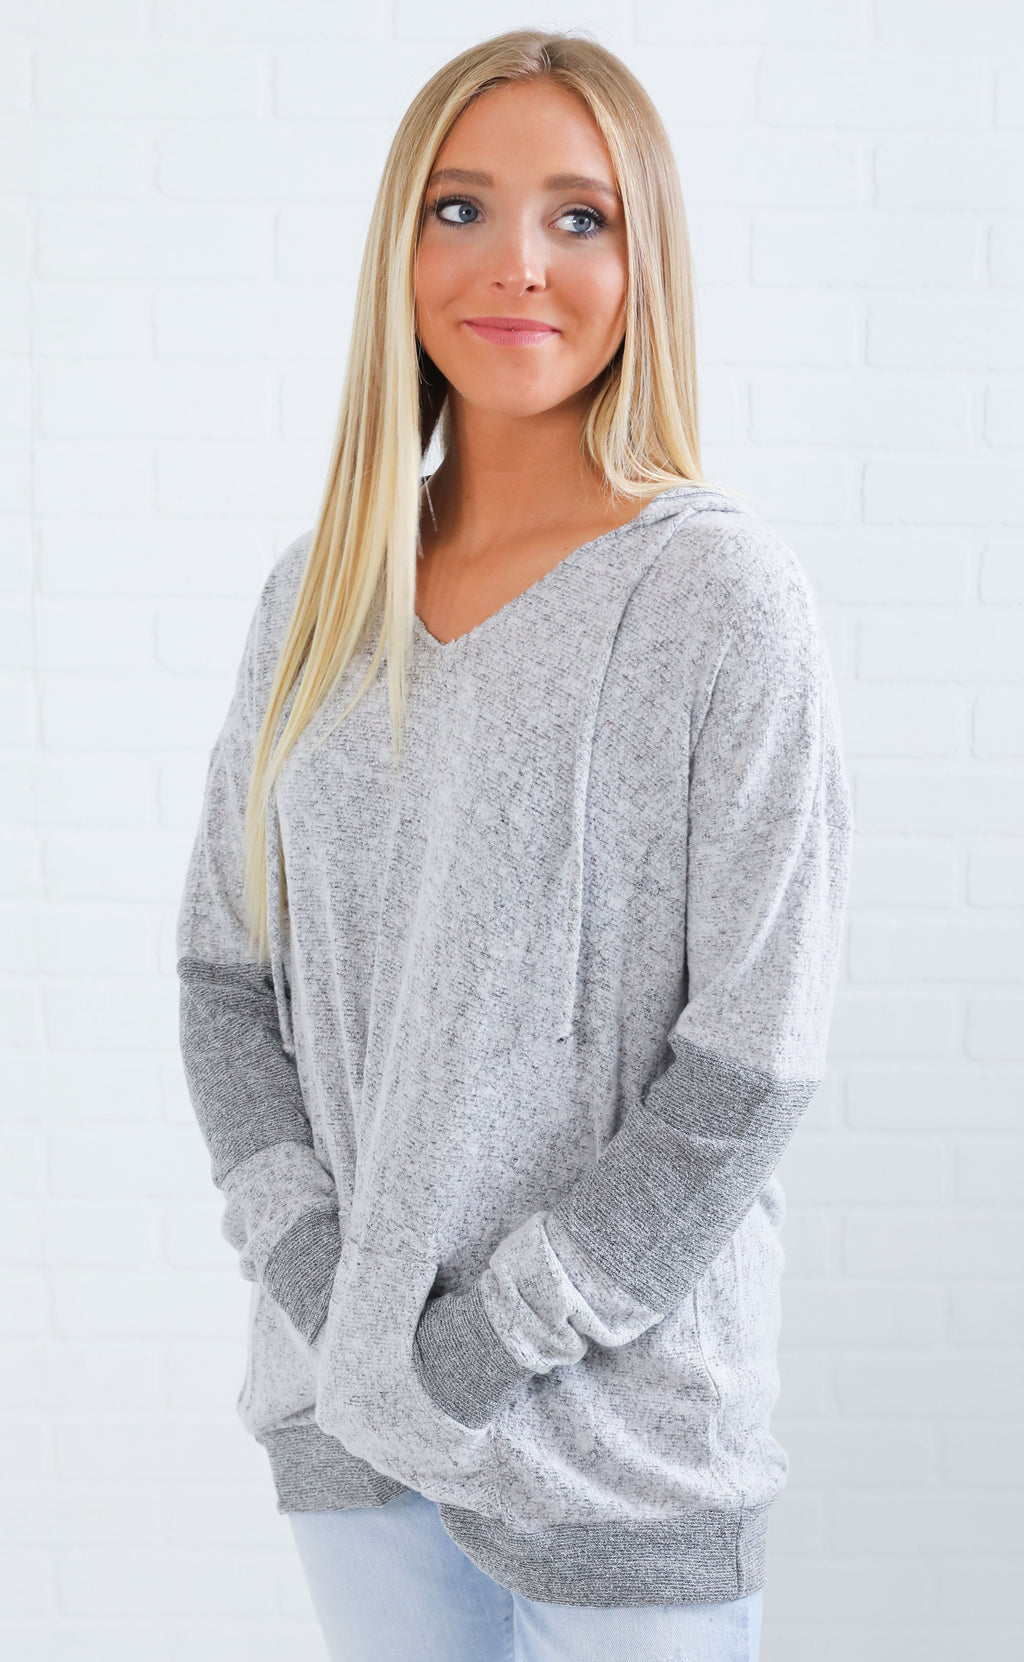 afternoon nap oversized sweater